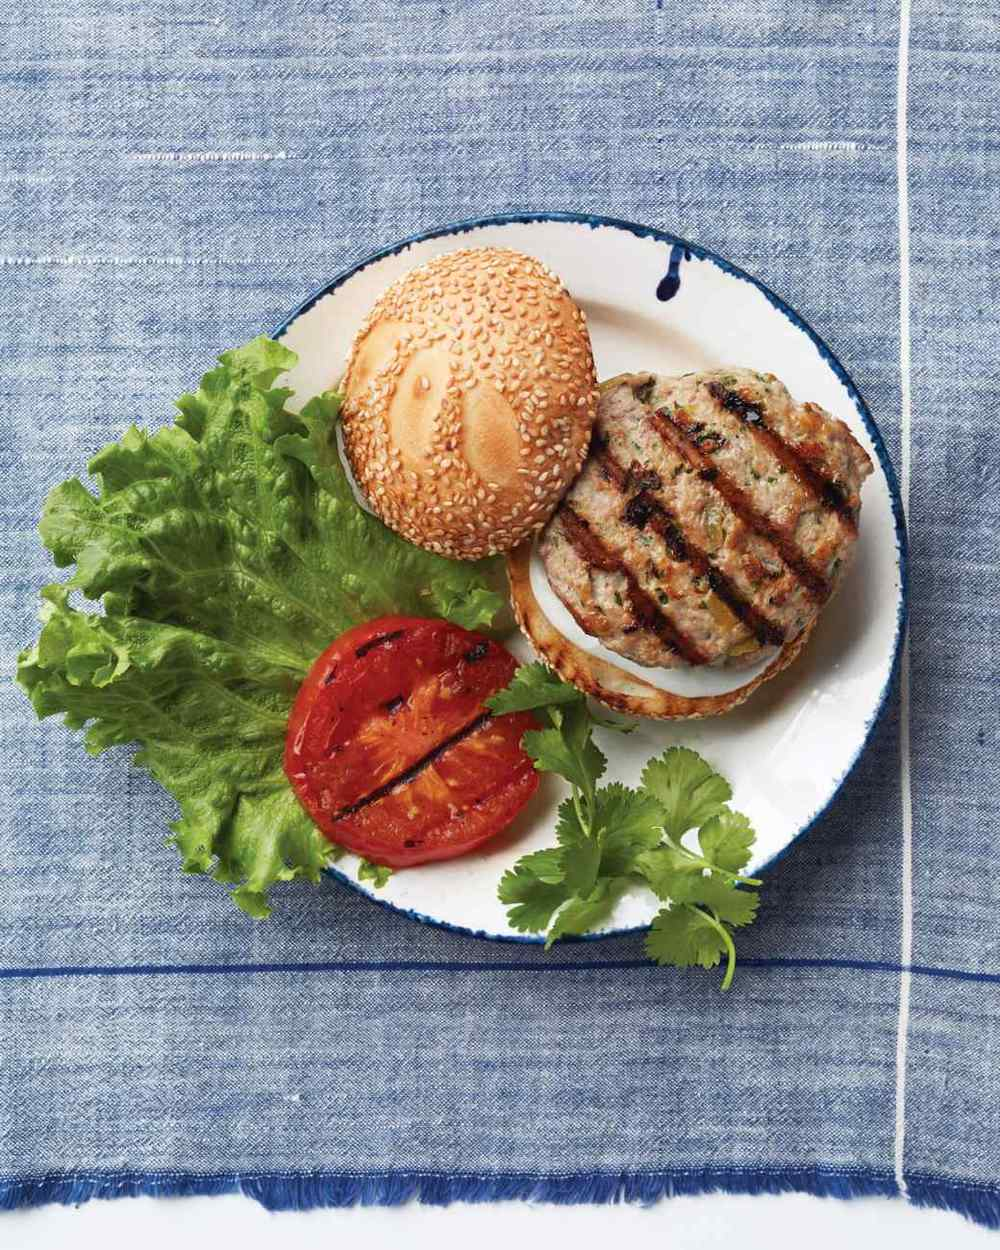 Green-Chile Chicken Burgers from Martha Stewart